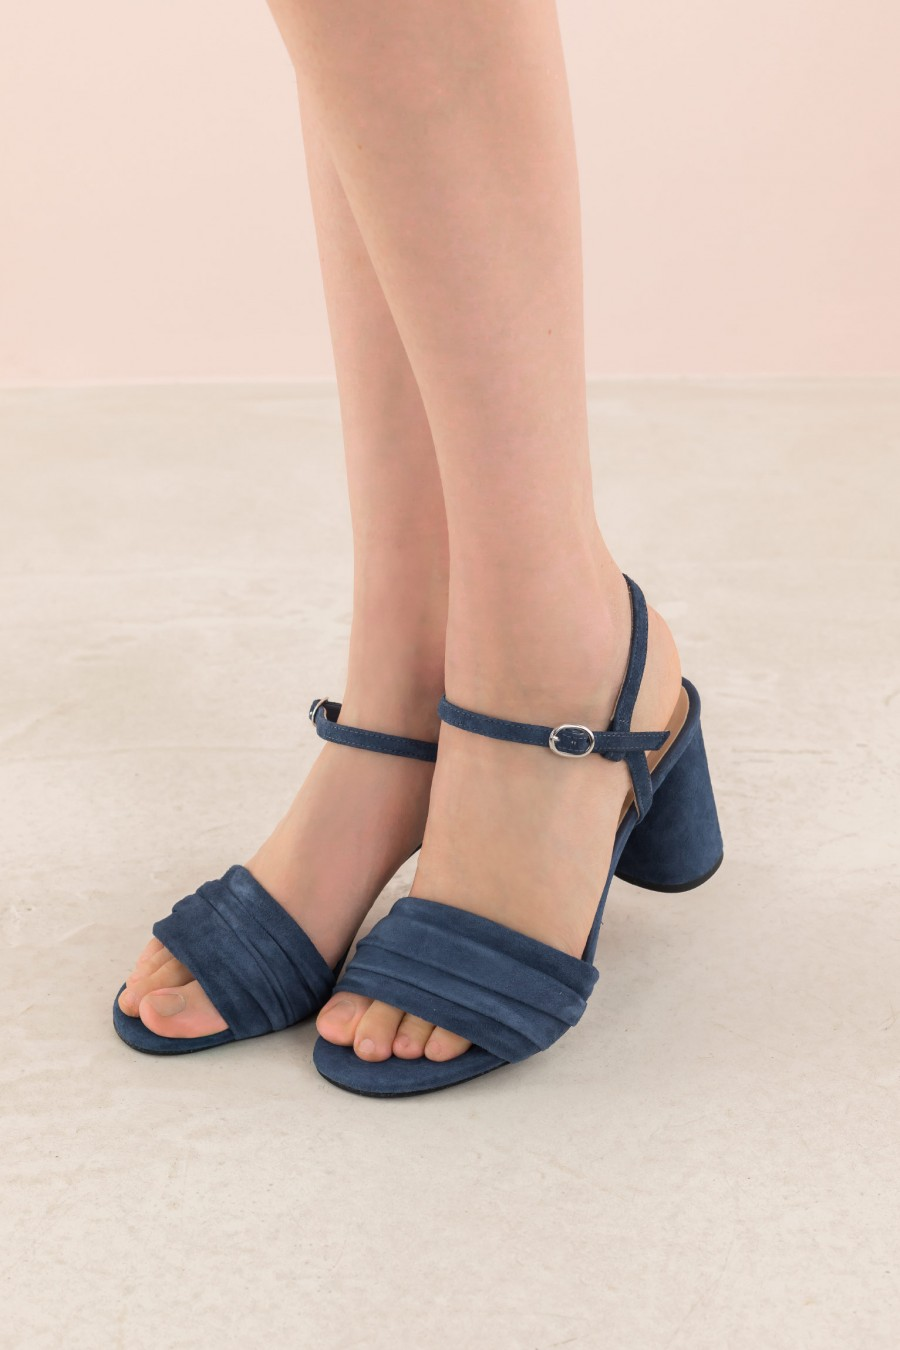 sandal with draped strap